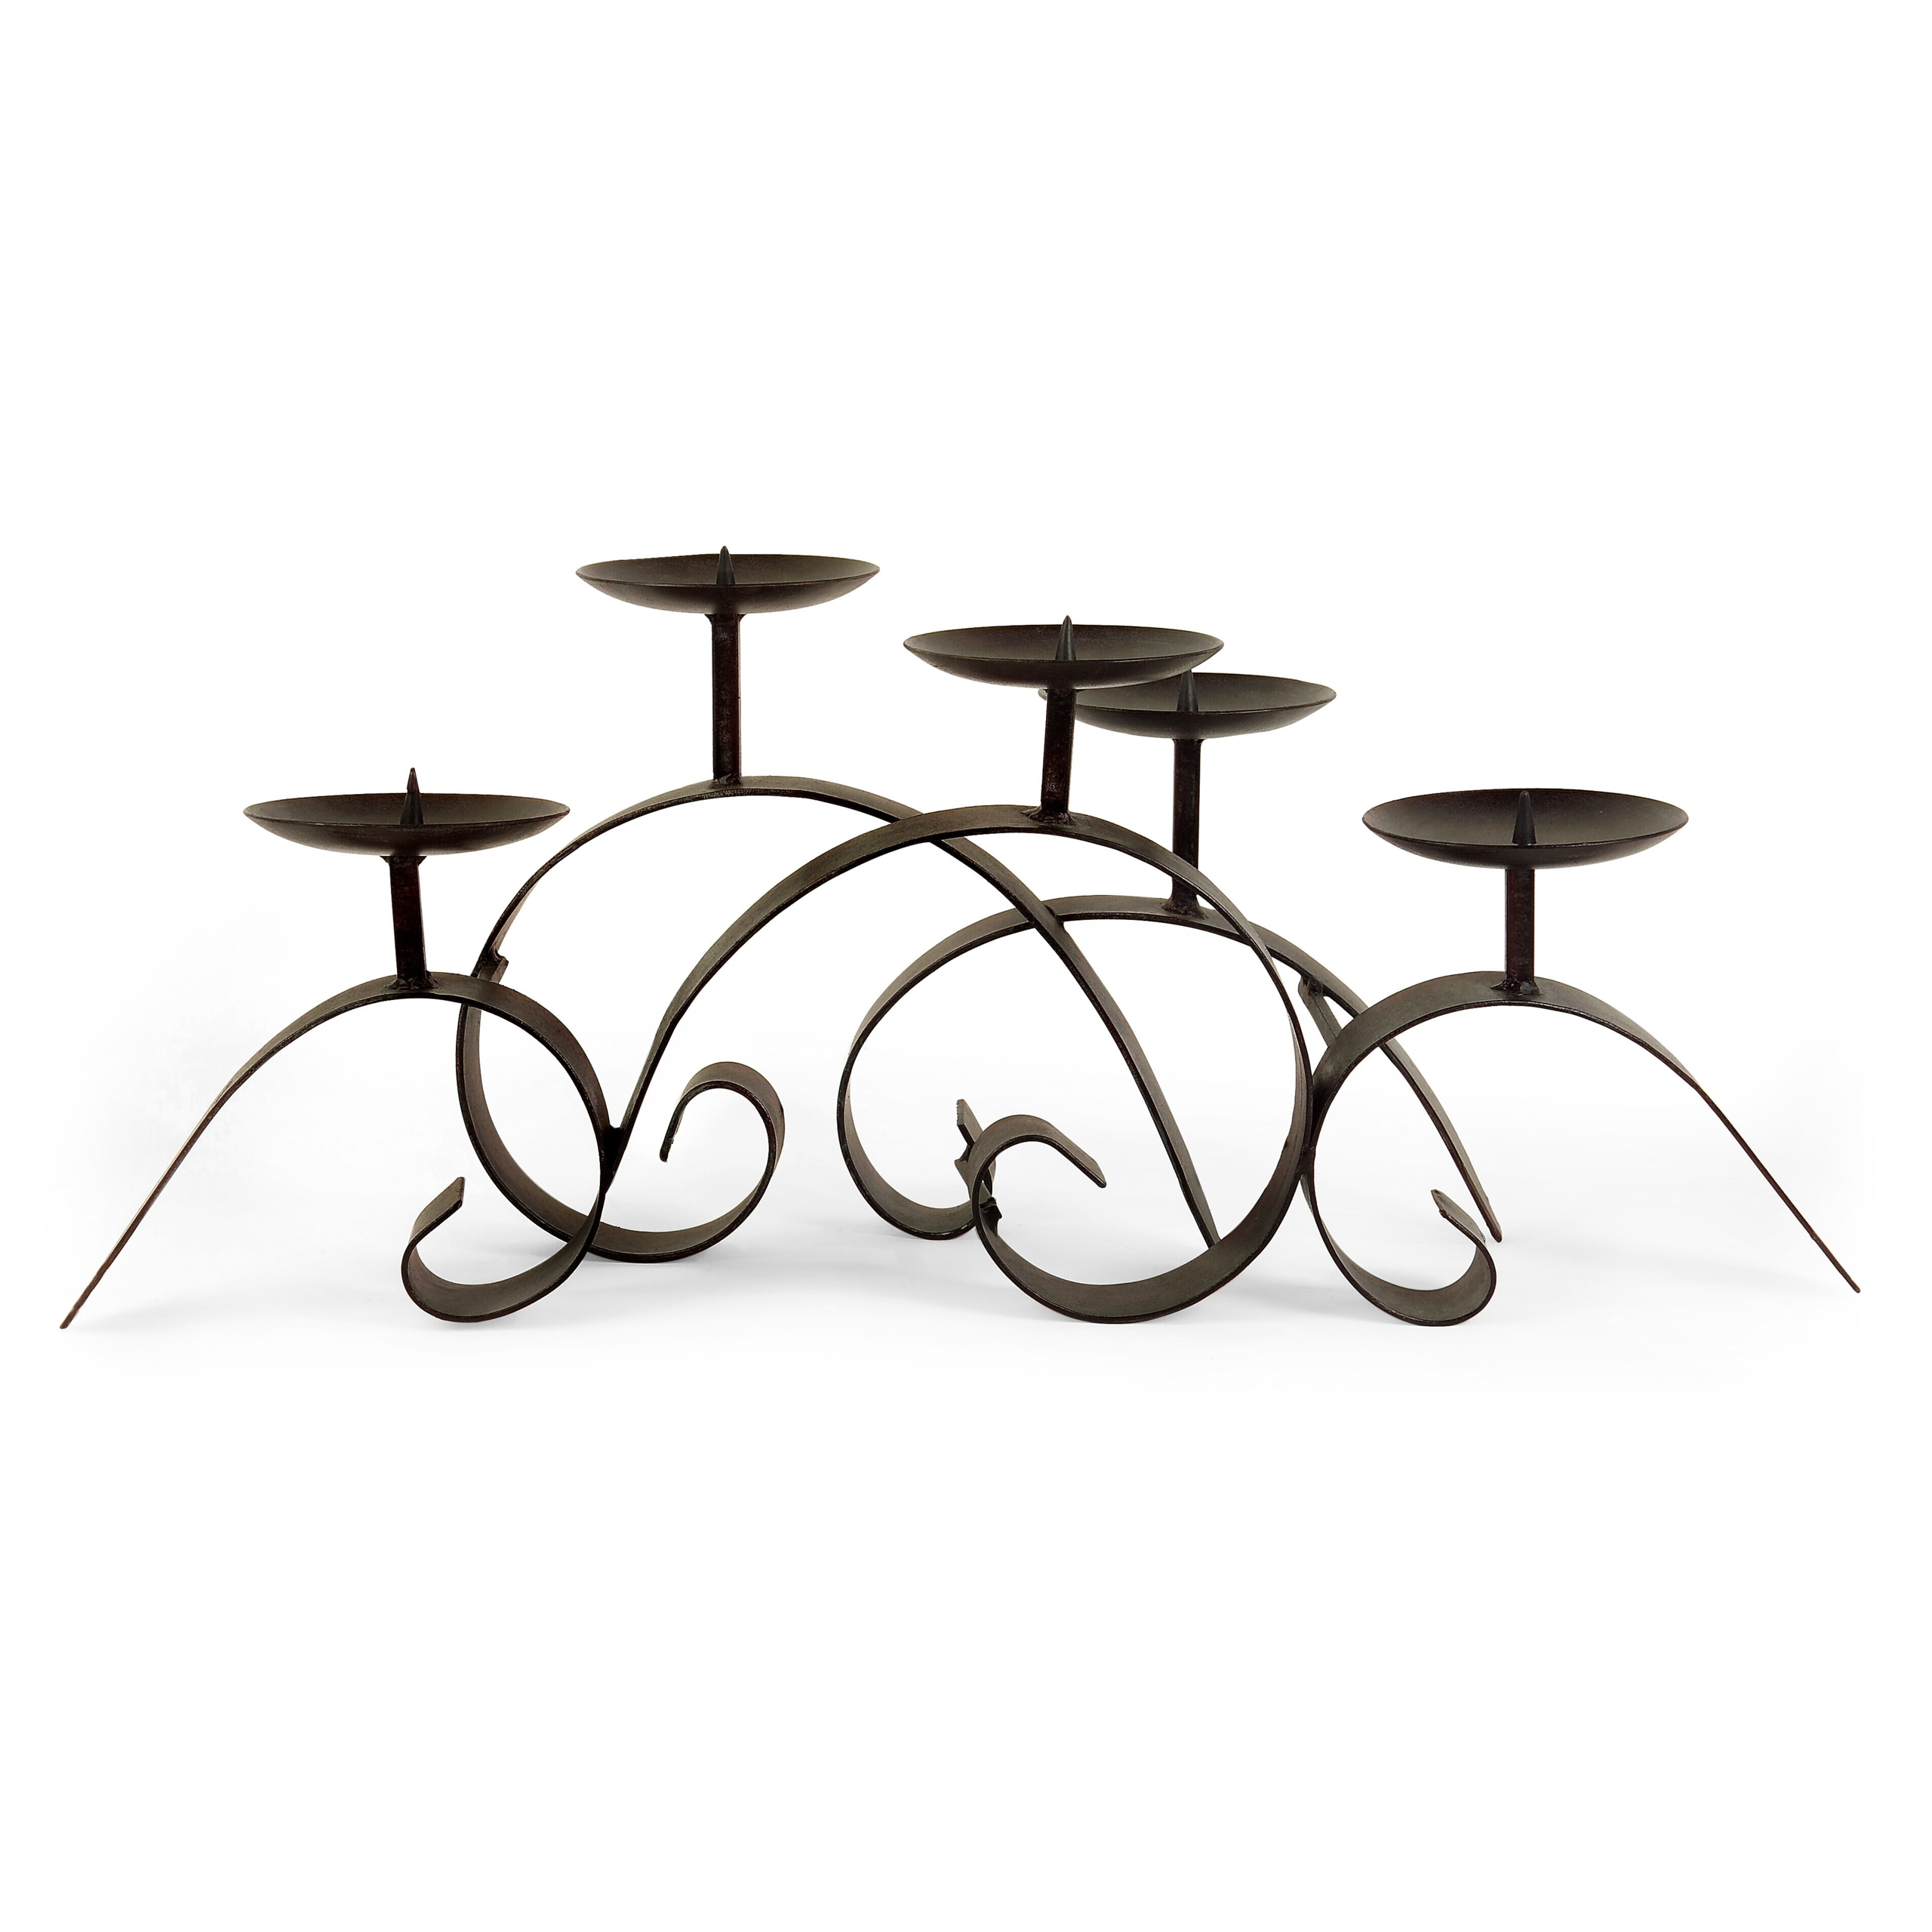 Wrought Iron Centerpiece Candelabra